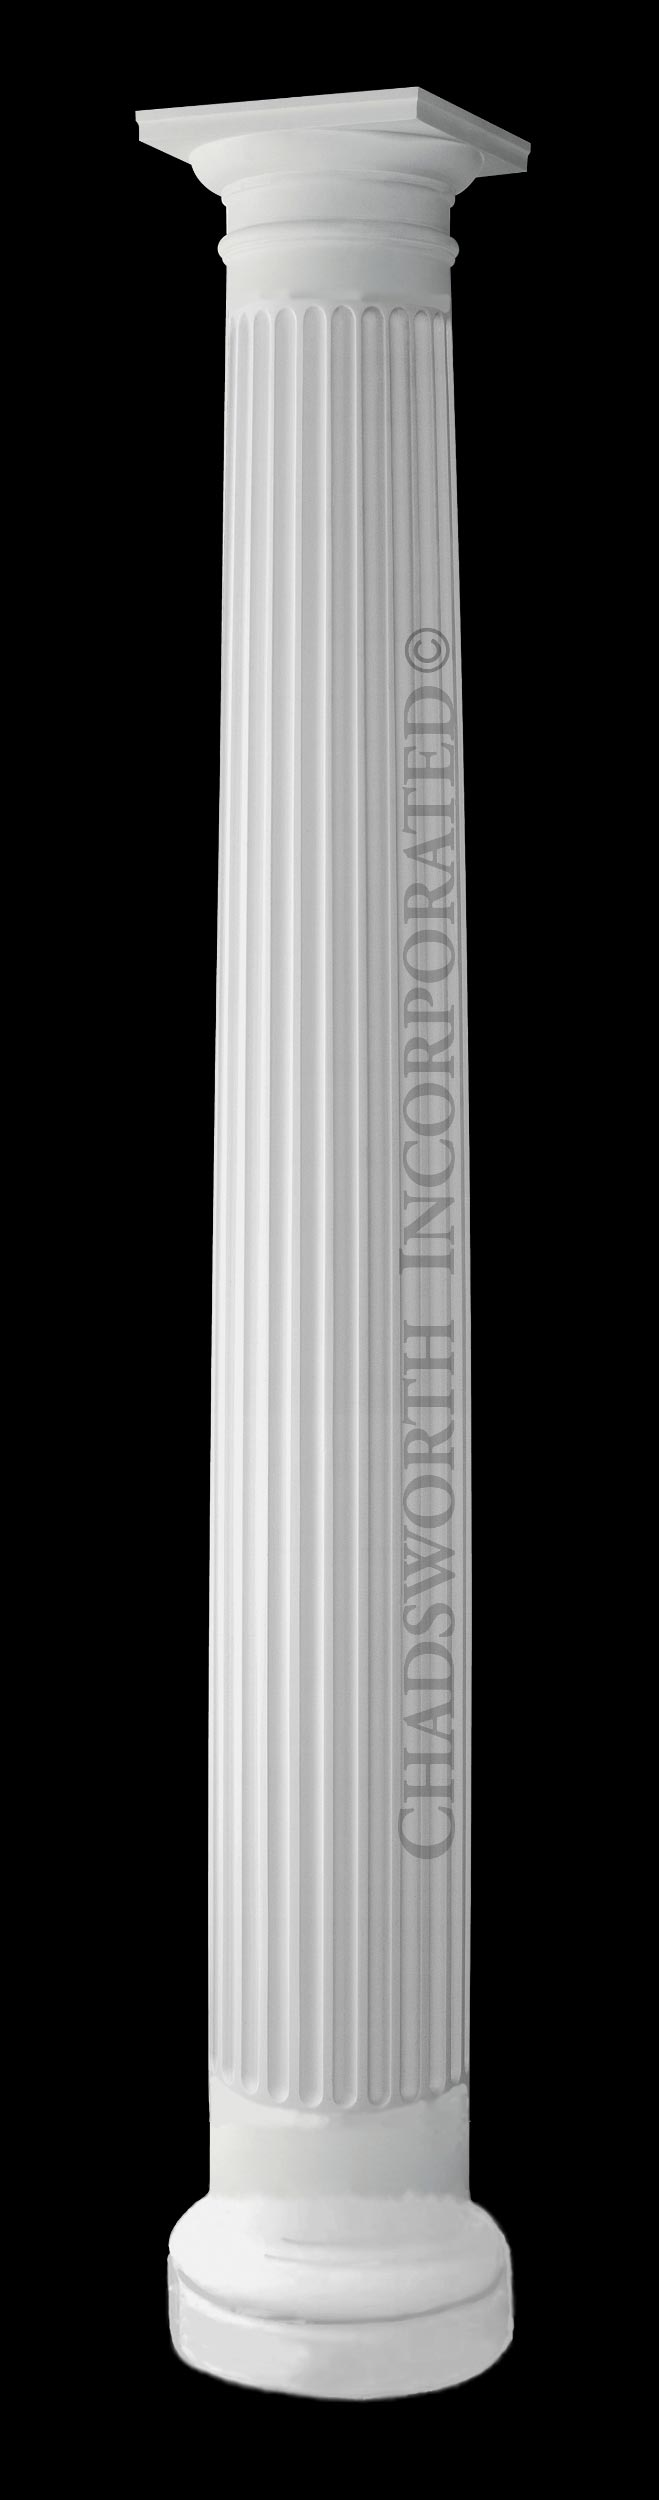 Design 601 Rb Tuscan Order Frp Composite Column